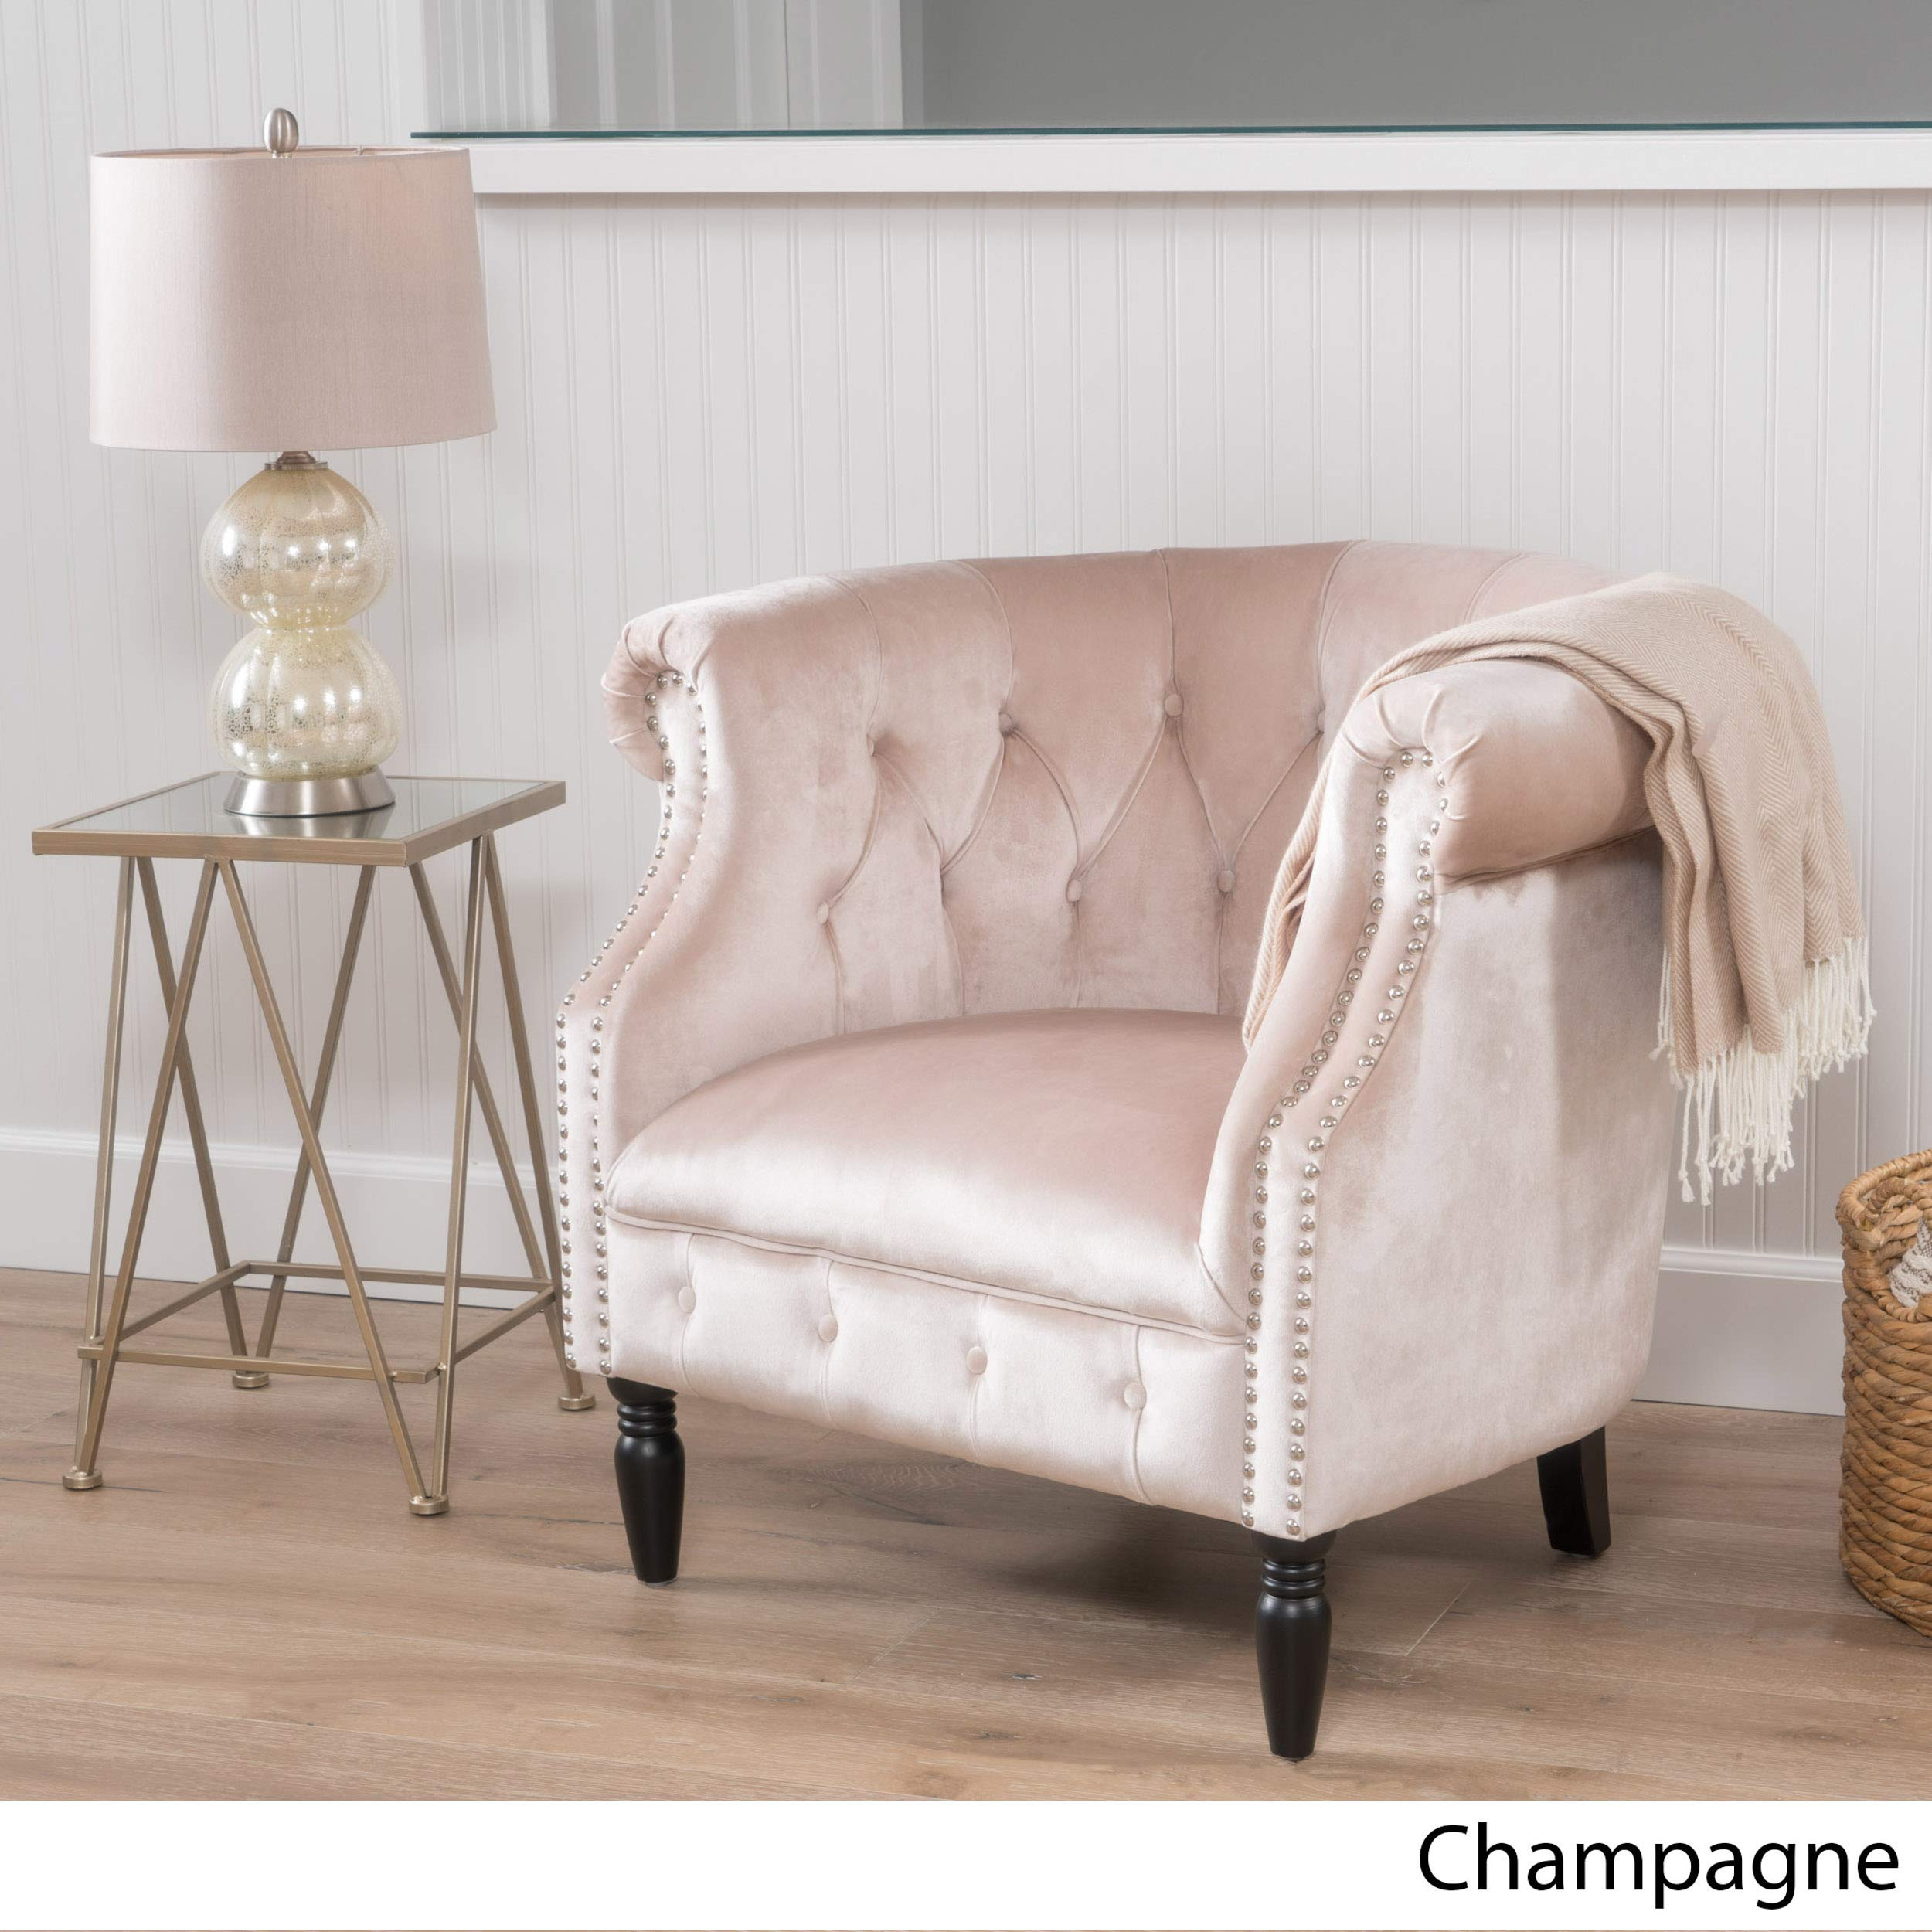 Details about Chanpagne Velvet Accent Chair Lounge Living Room Bedroom Club  Tufted Traditional